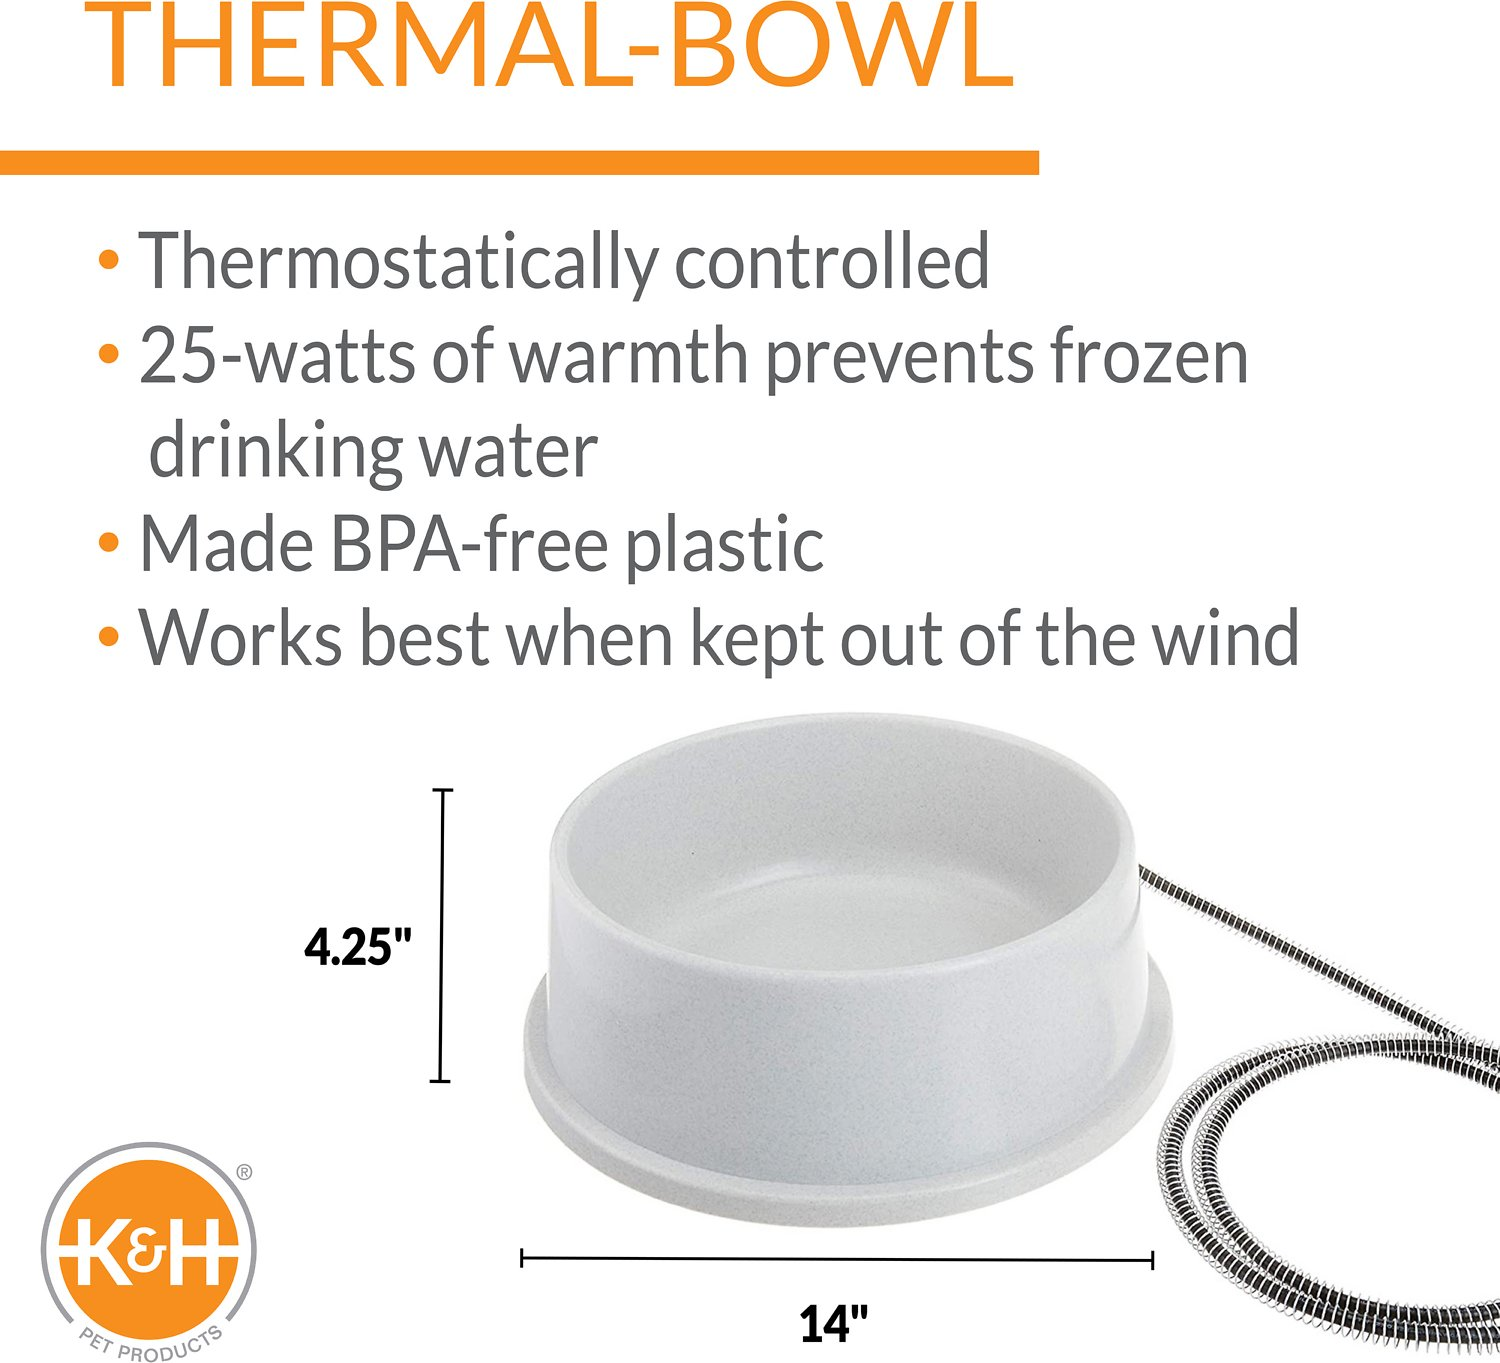 K&H Thermal Bowl